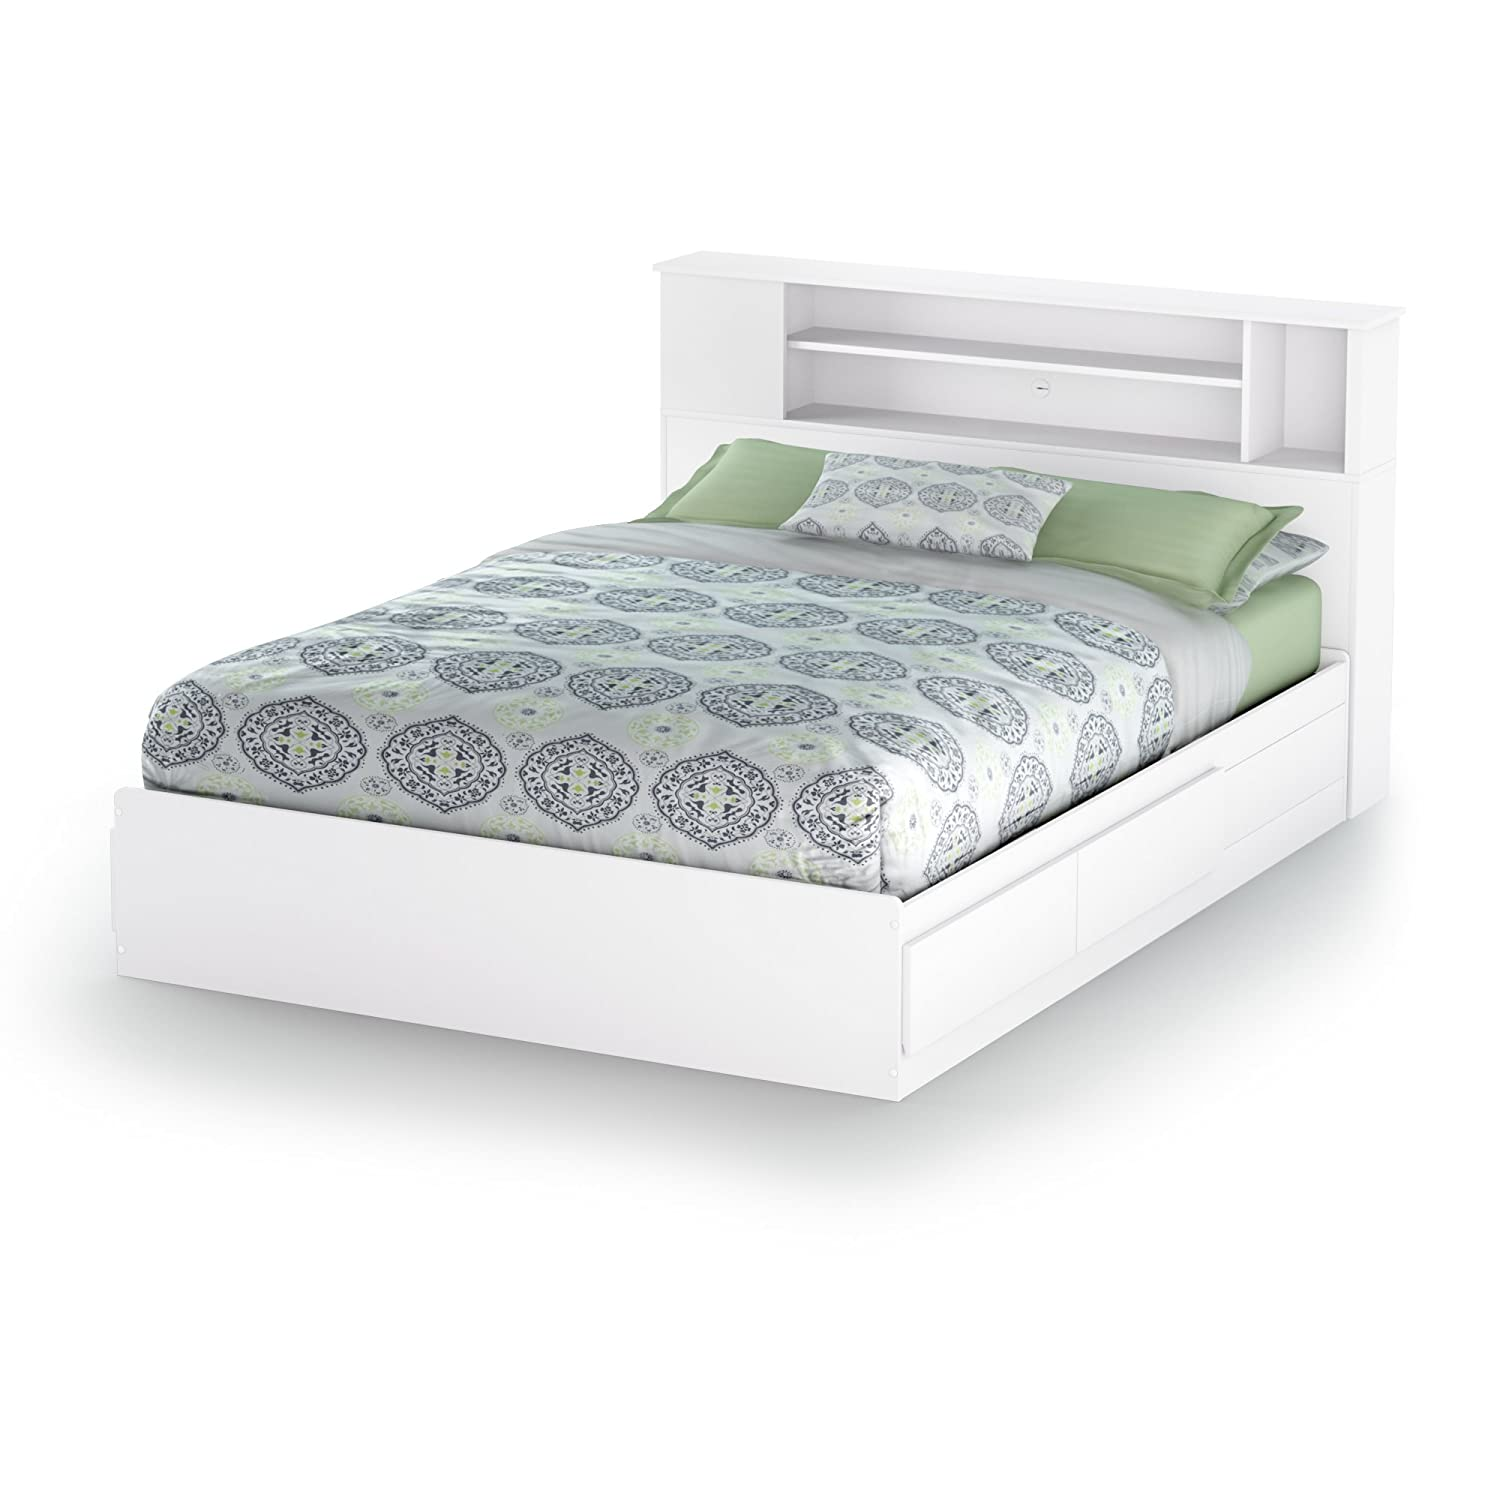 Amazon.com South Shore Vito Collection Queen 60-Inch Mates Bed Pure White Kitchen u0026 Dining  sc 1 st  Amazon.com & Amazon.com: South Shore Vito Collection Queen 60-Inch Mates Bed ...